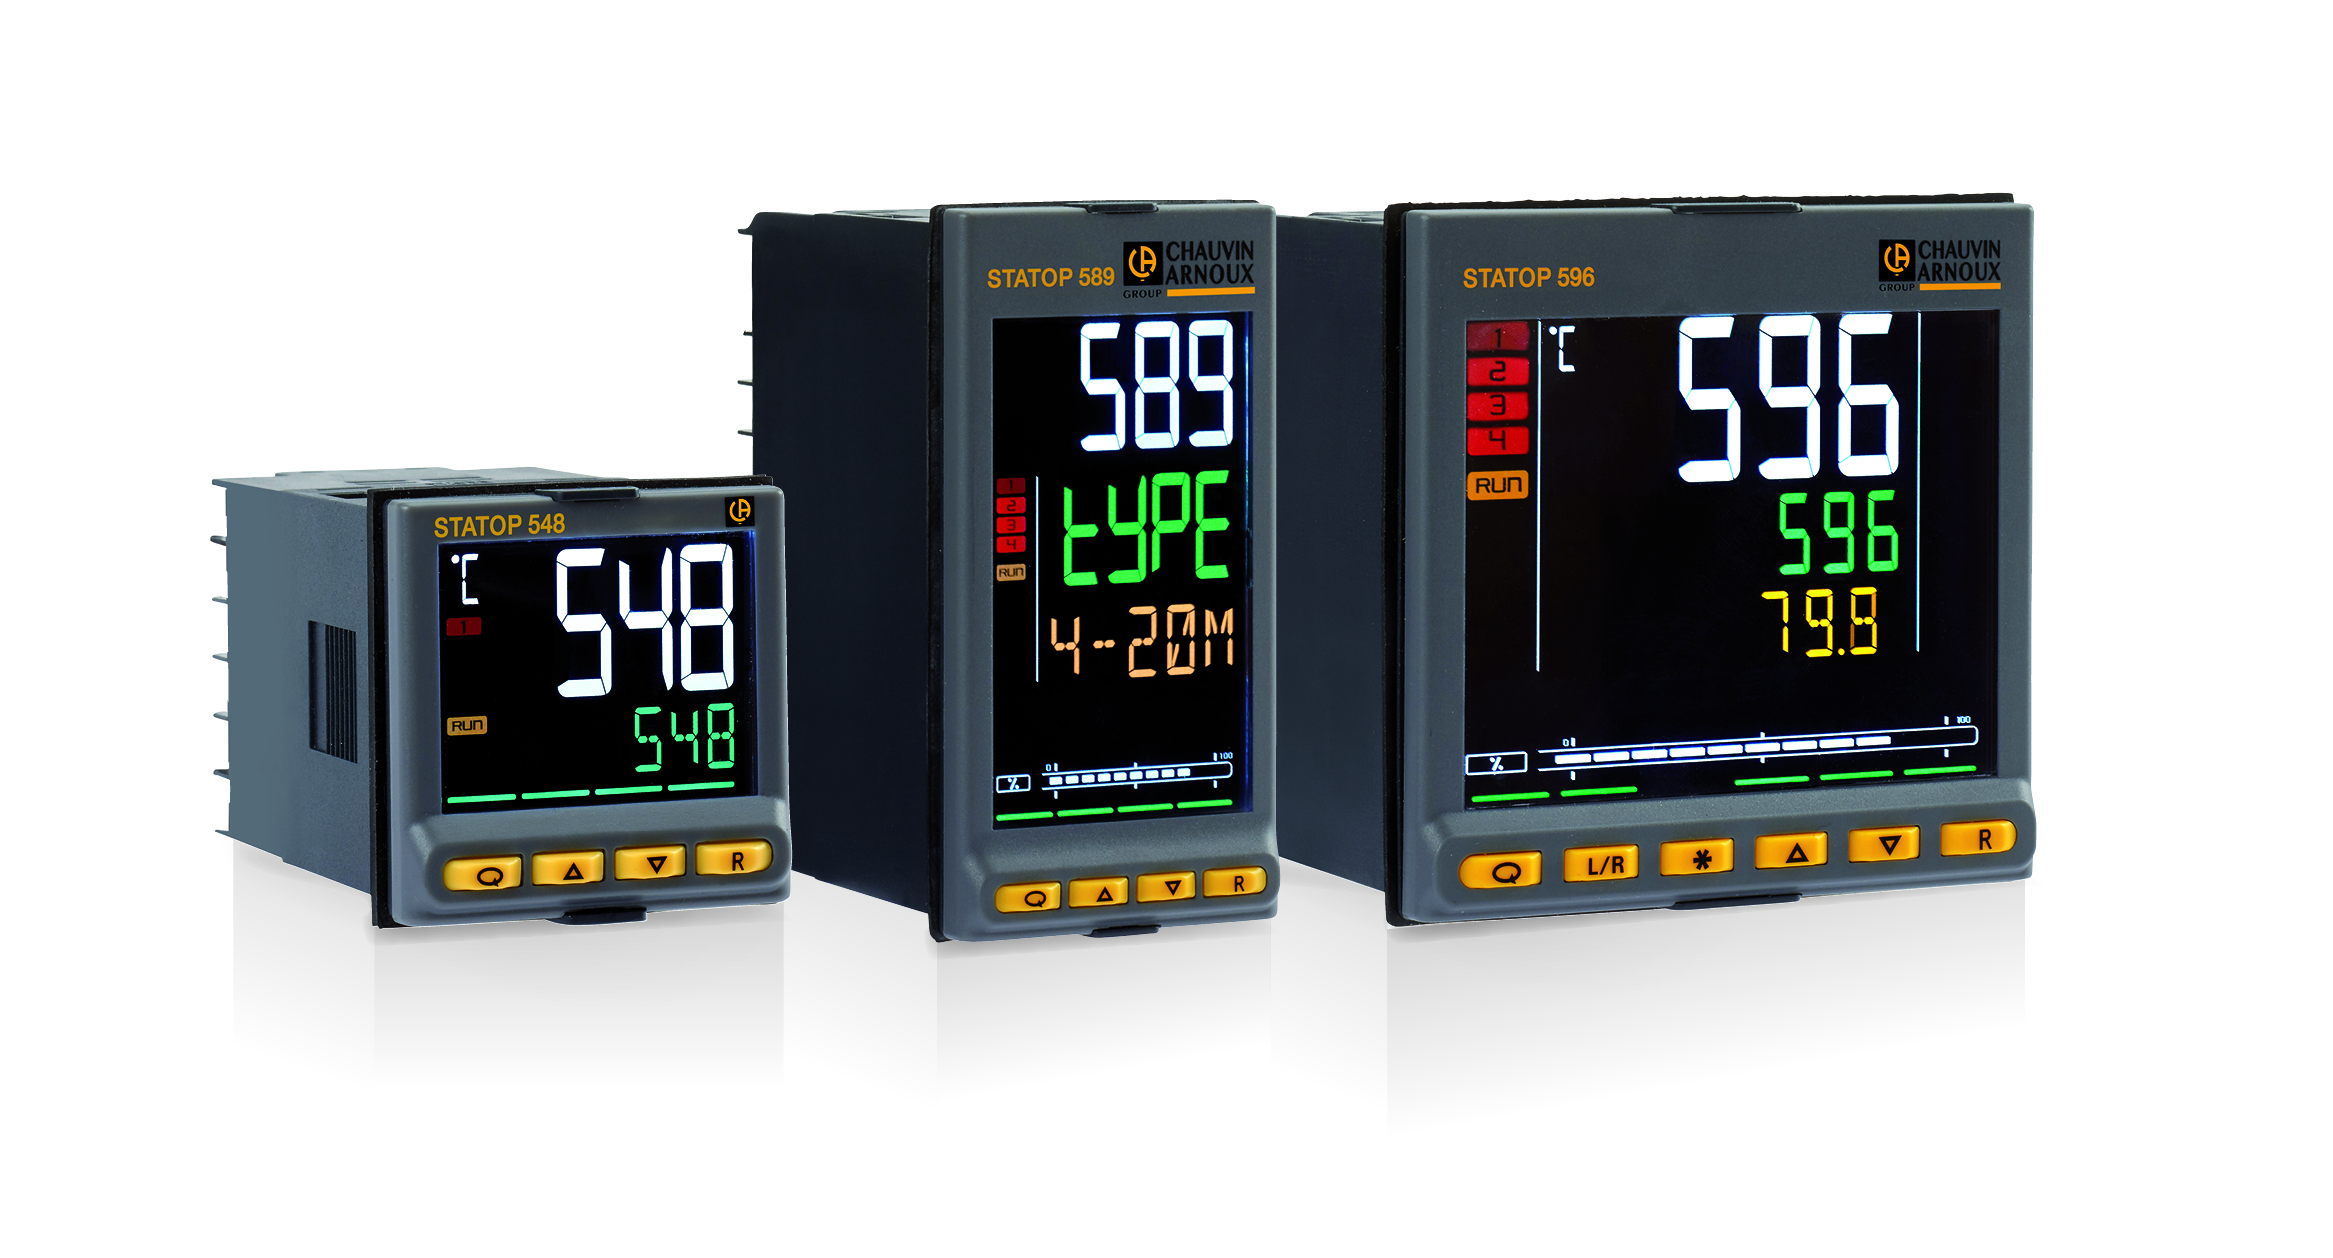 New 500 Series of temperature and process controllers